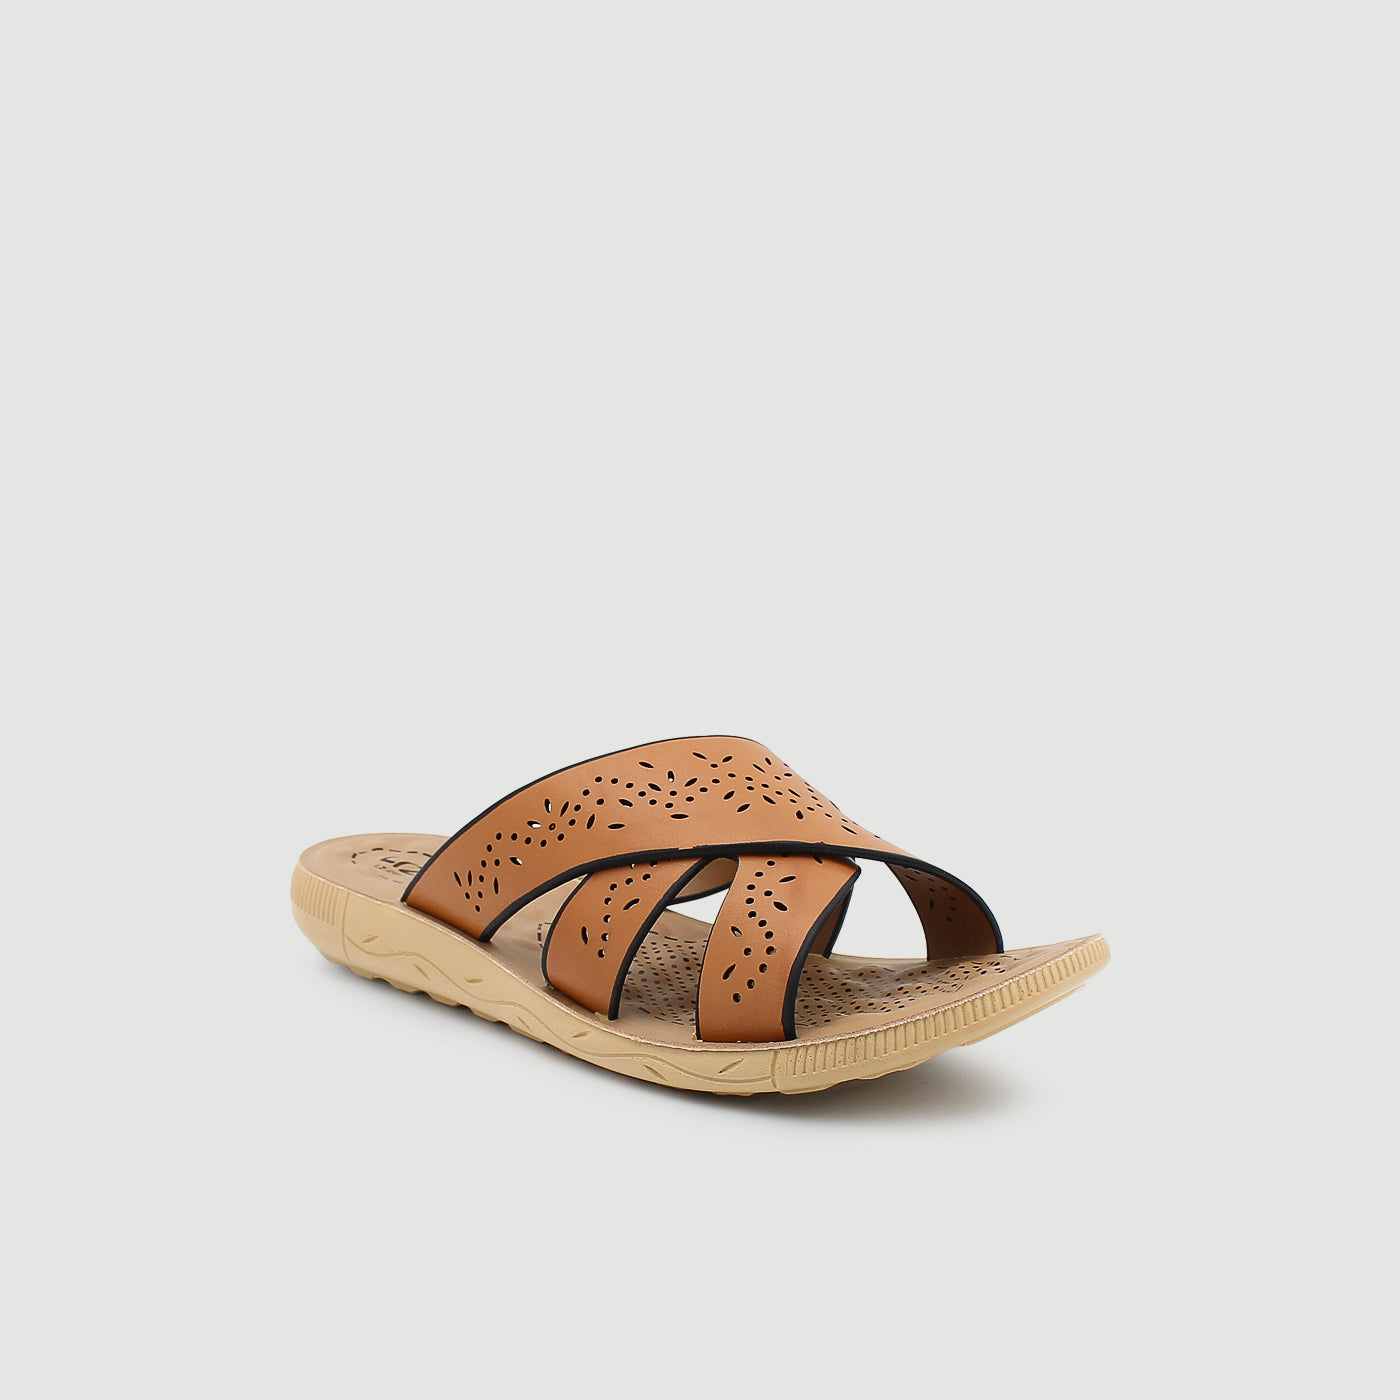 Lazer-cut Ladies Chappals